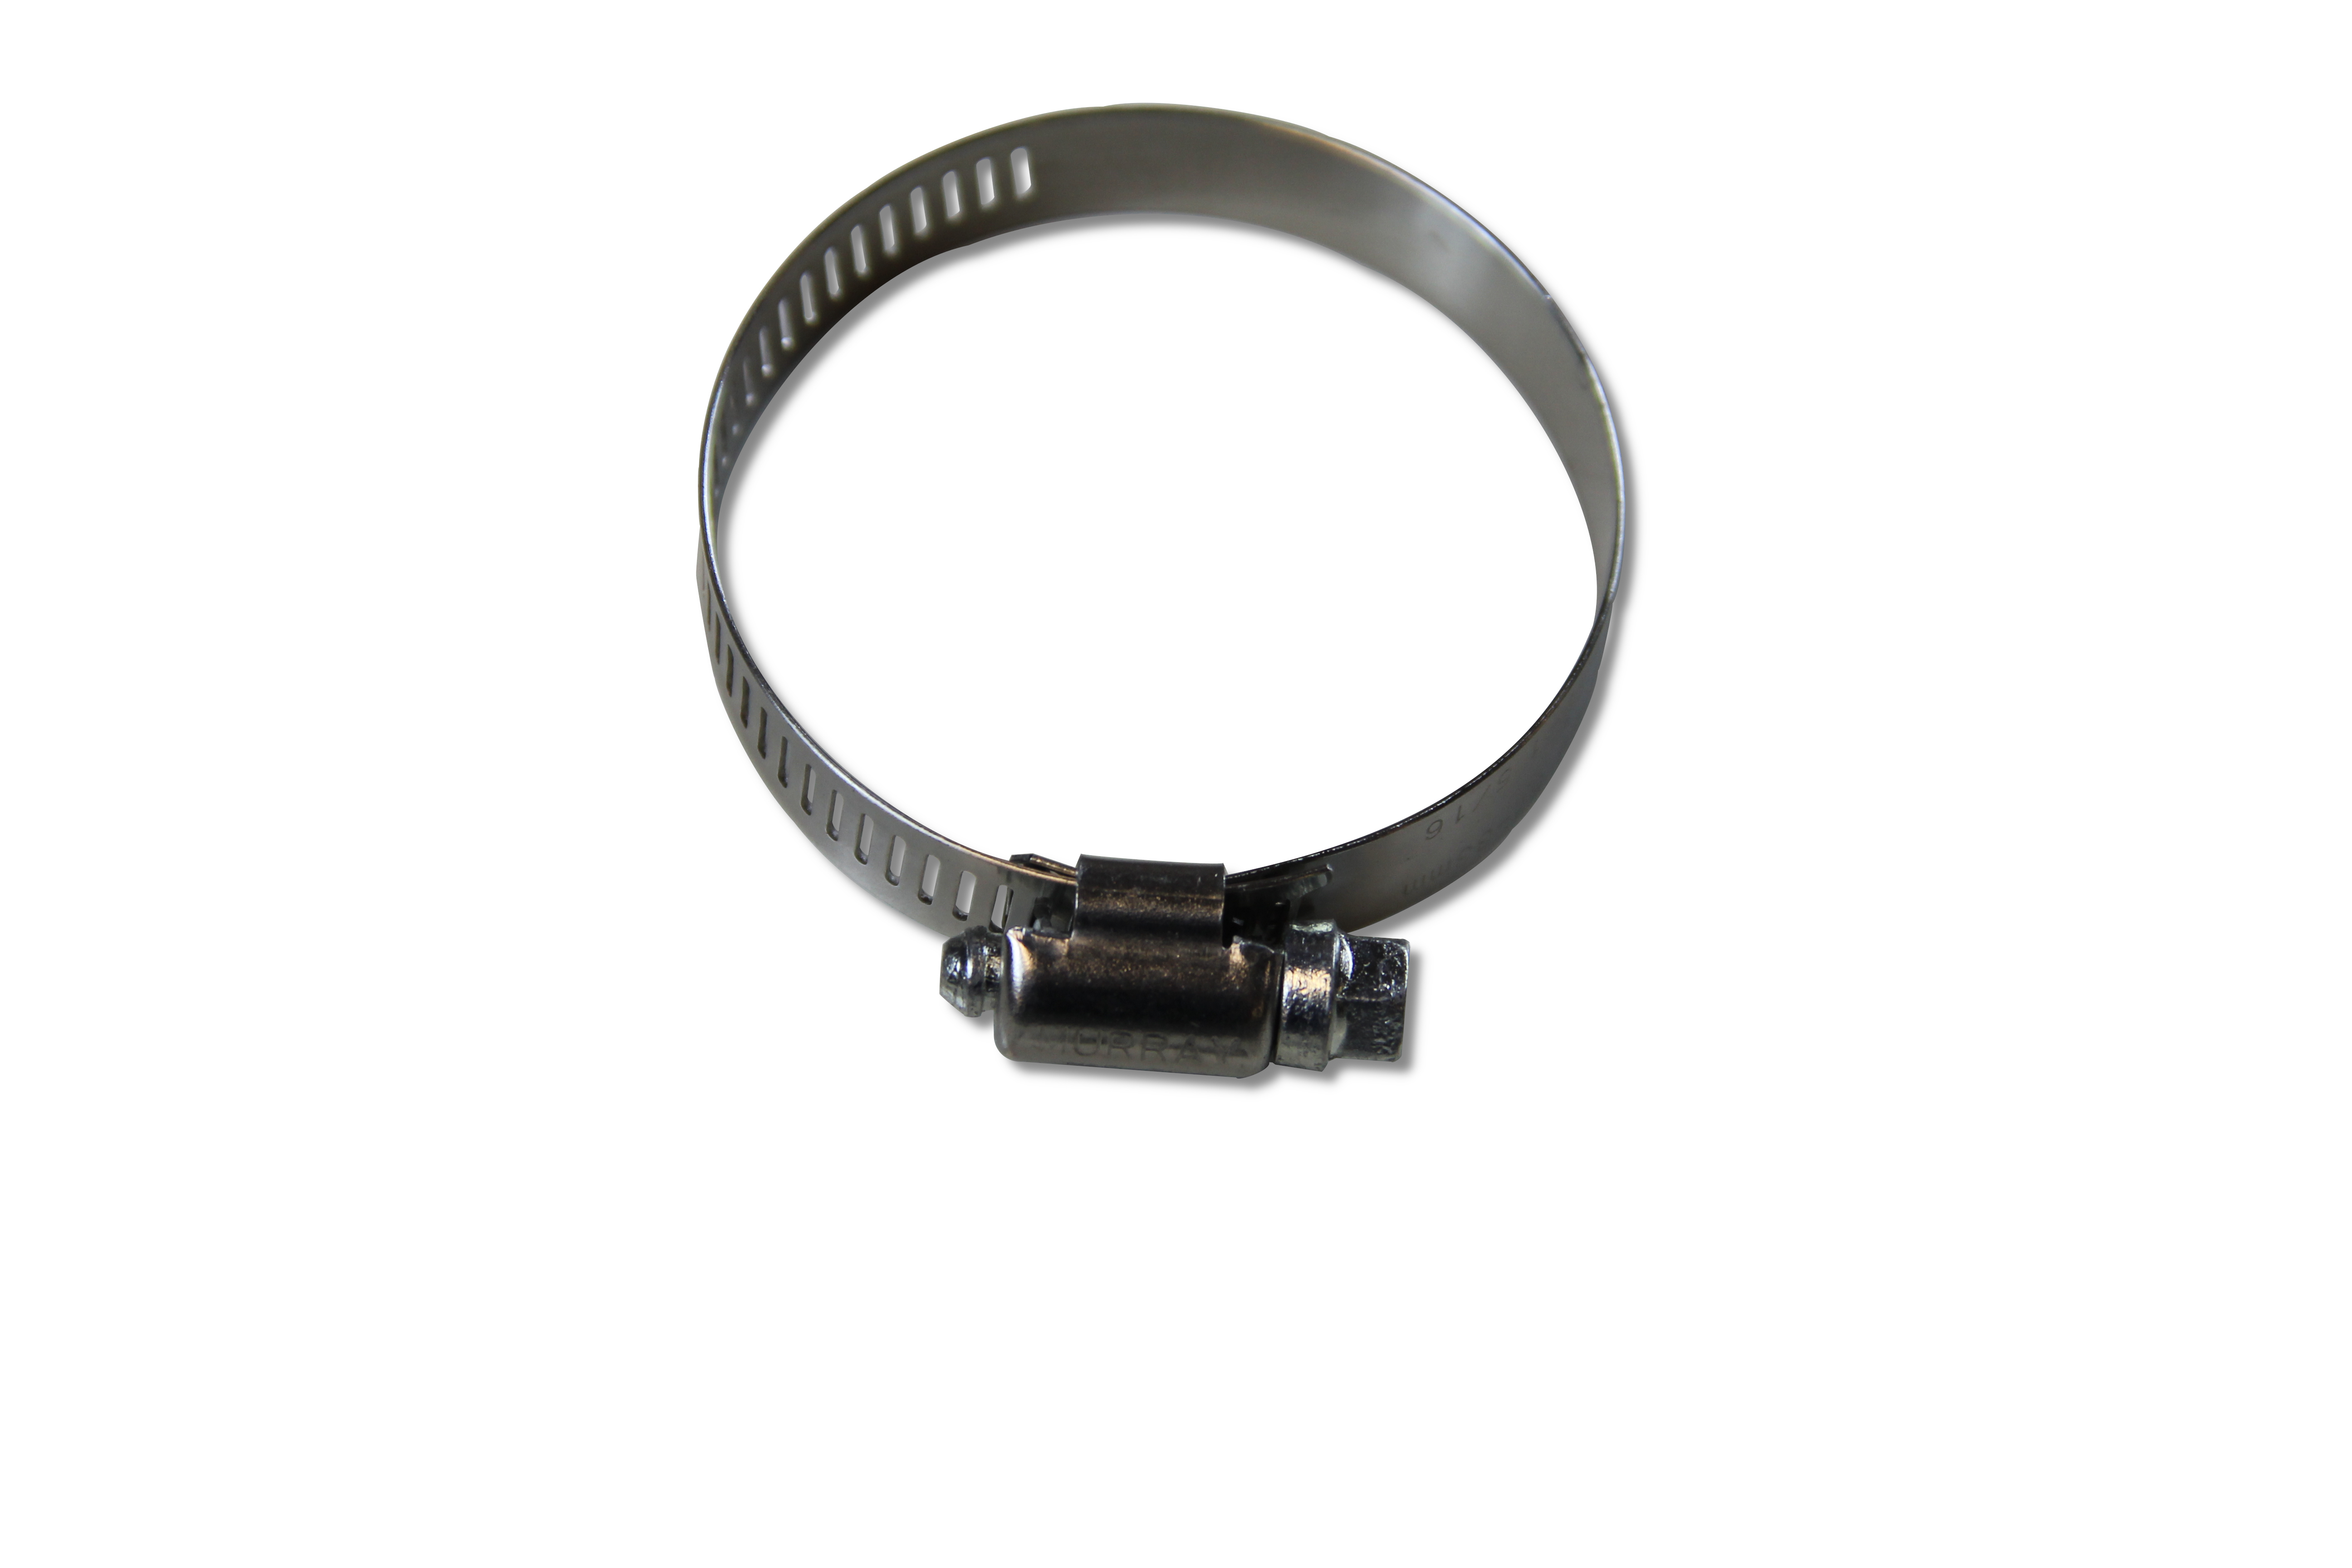 US Tarp 13913 Tarp Collar Clamp for Steel Cross Tube (Clamp Only)